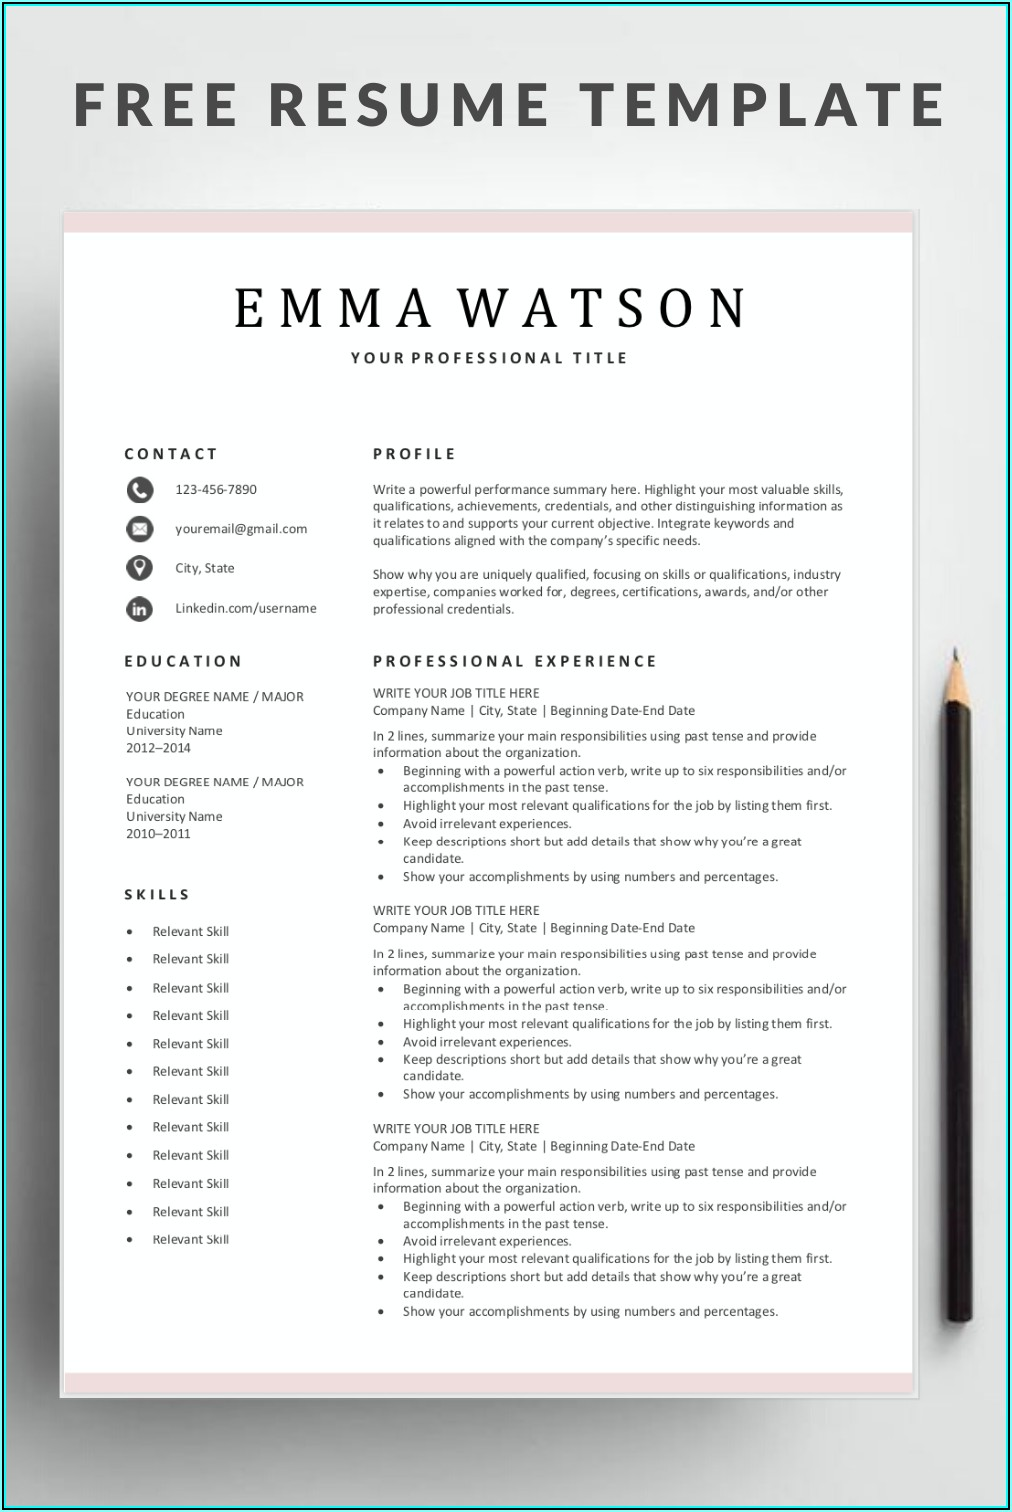 Resume Template Free Download Word Simple